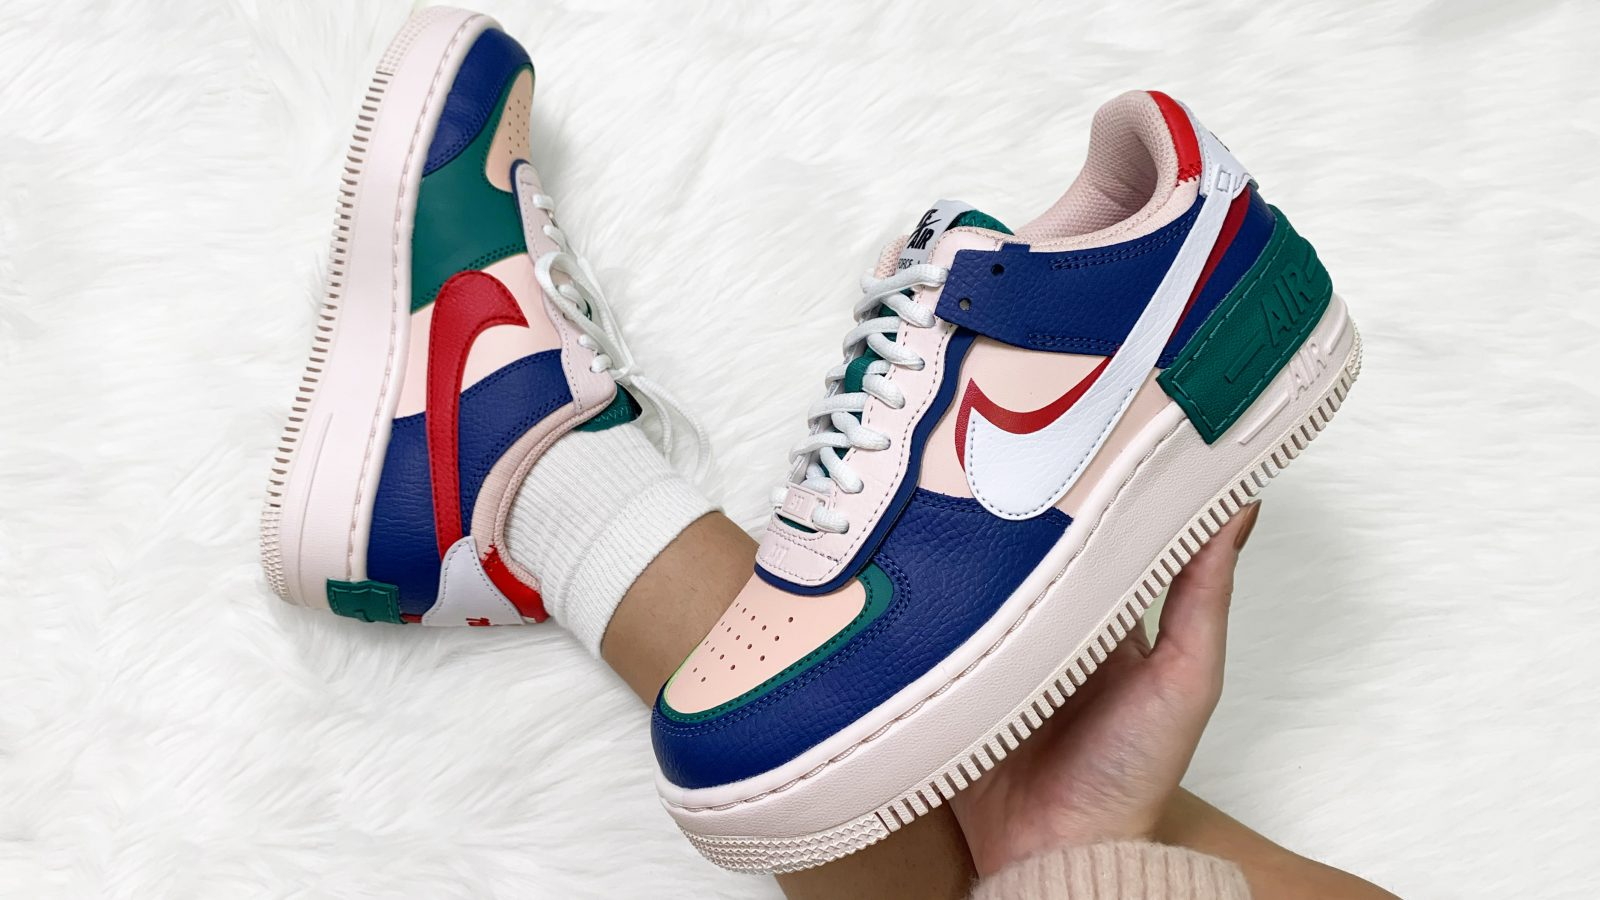 Hurry Students Save 20 On These Must Cop Kicks From Nike News